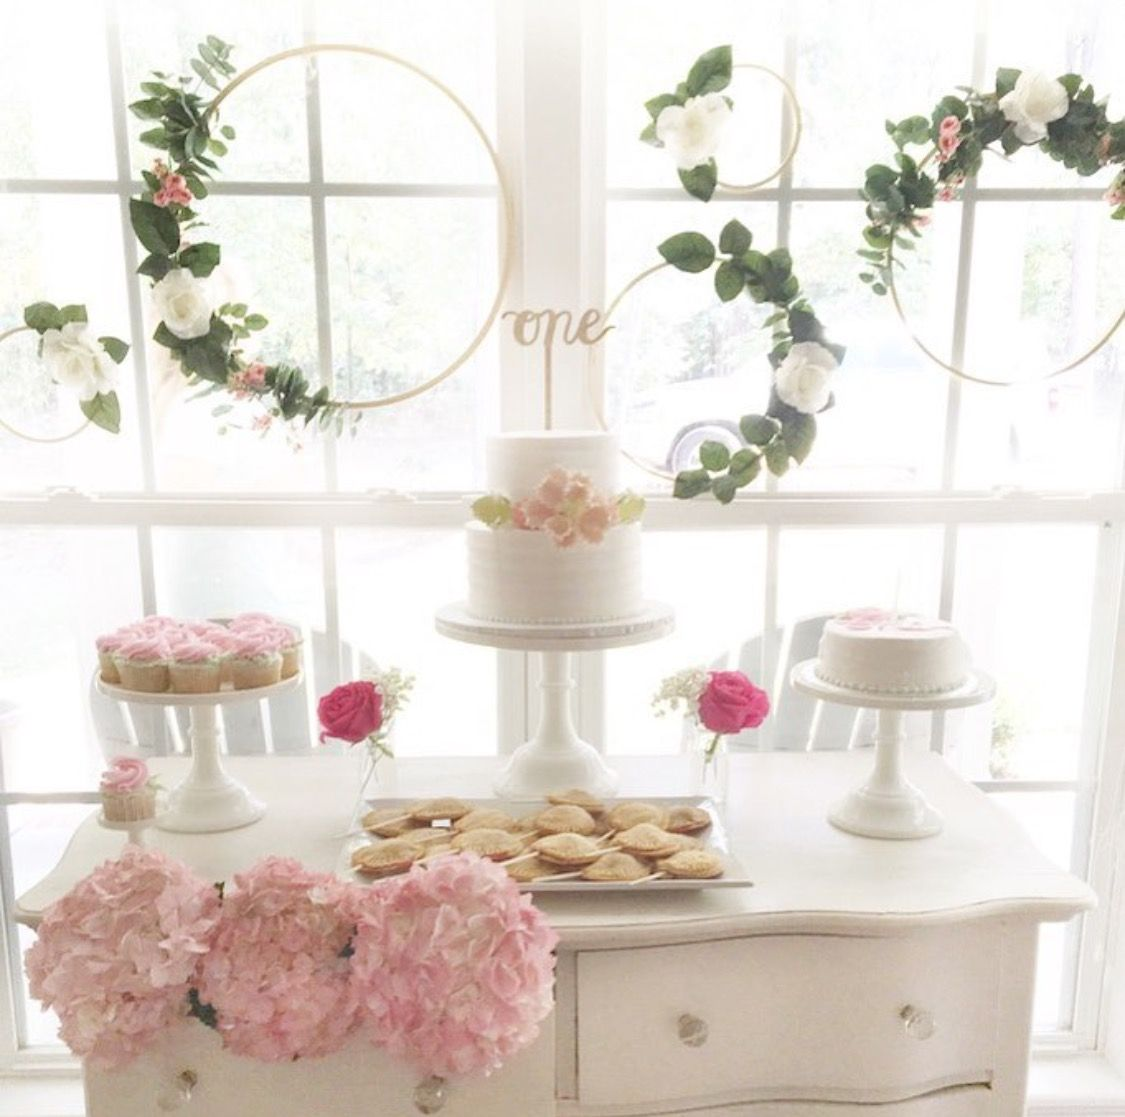 Birthday Table Top Decorations: Lola In Onederland In 2019